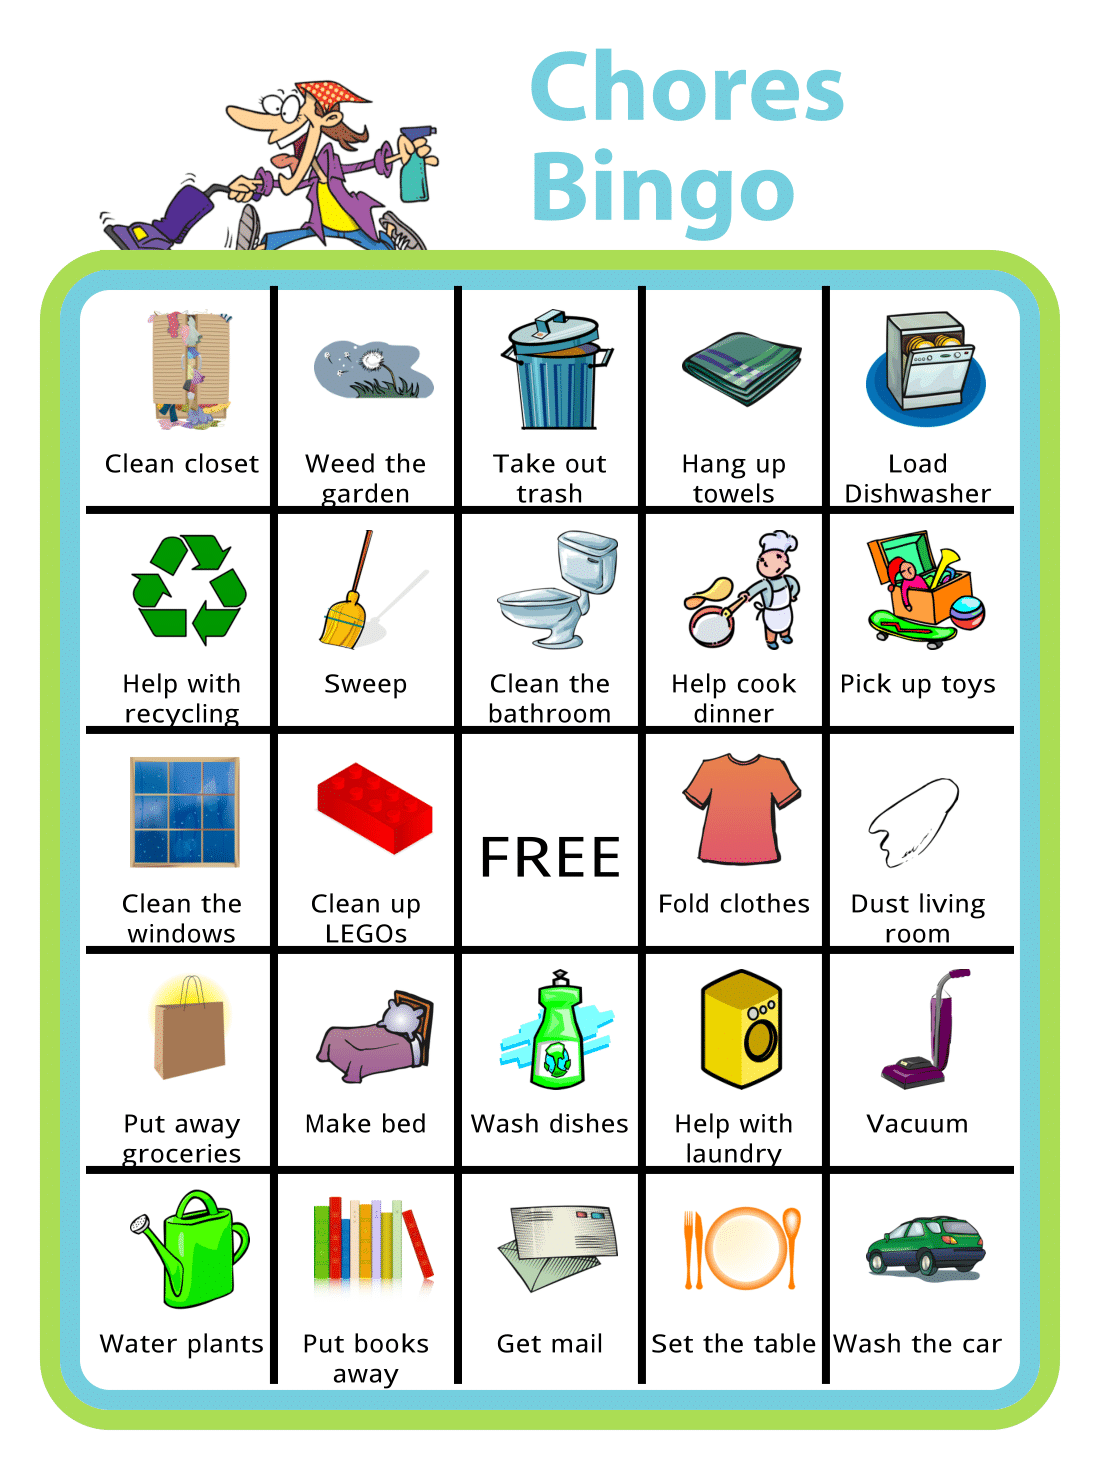 Chores Bingo Is A Great Way To Mix Things Up And Make